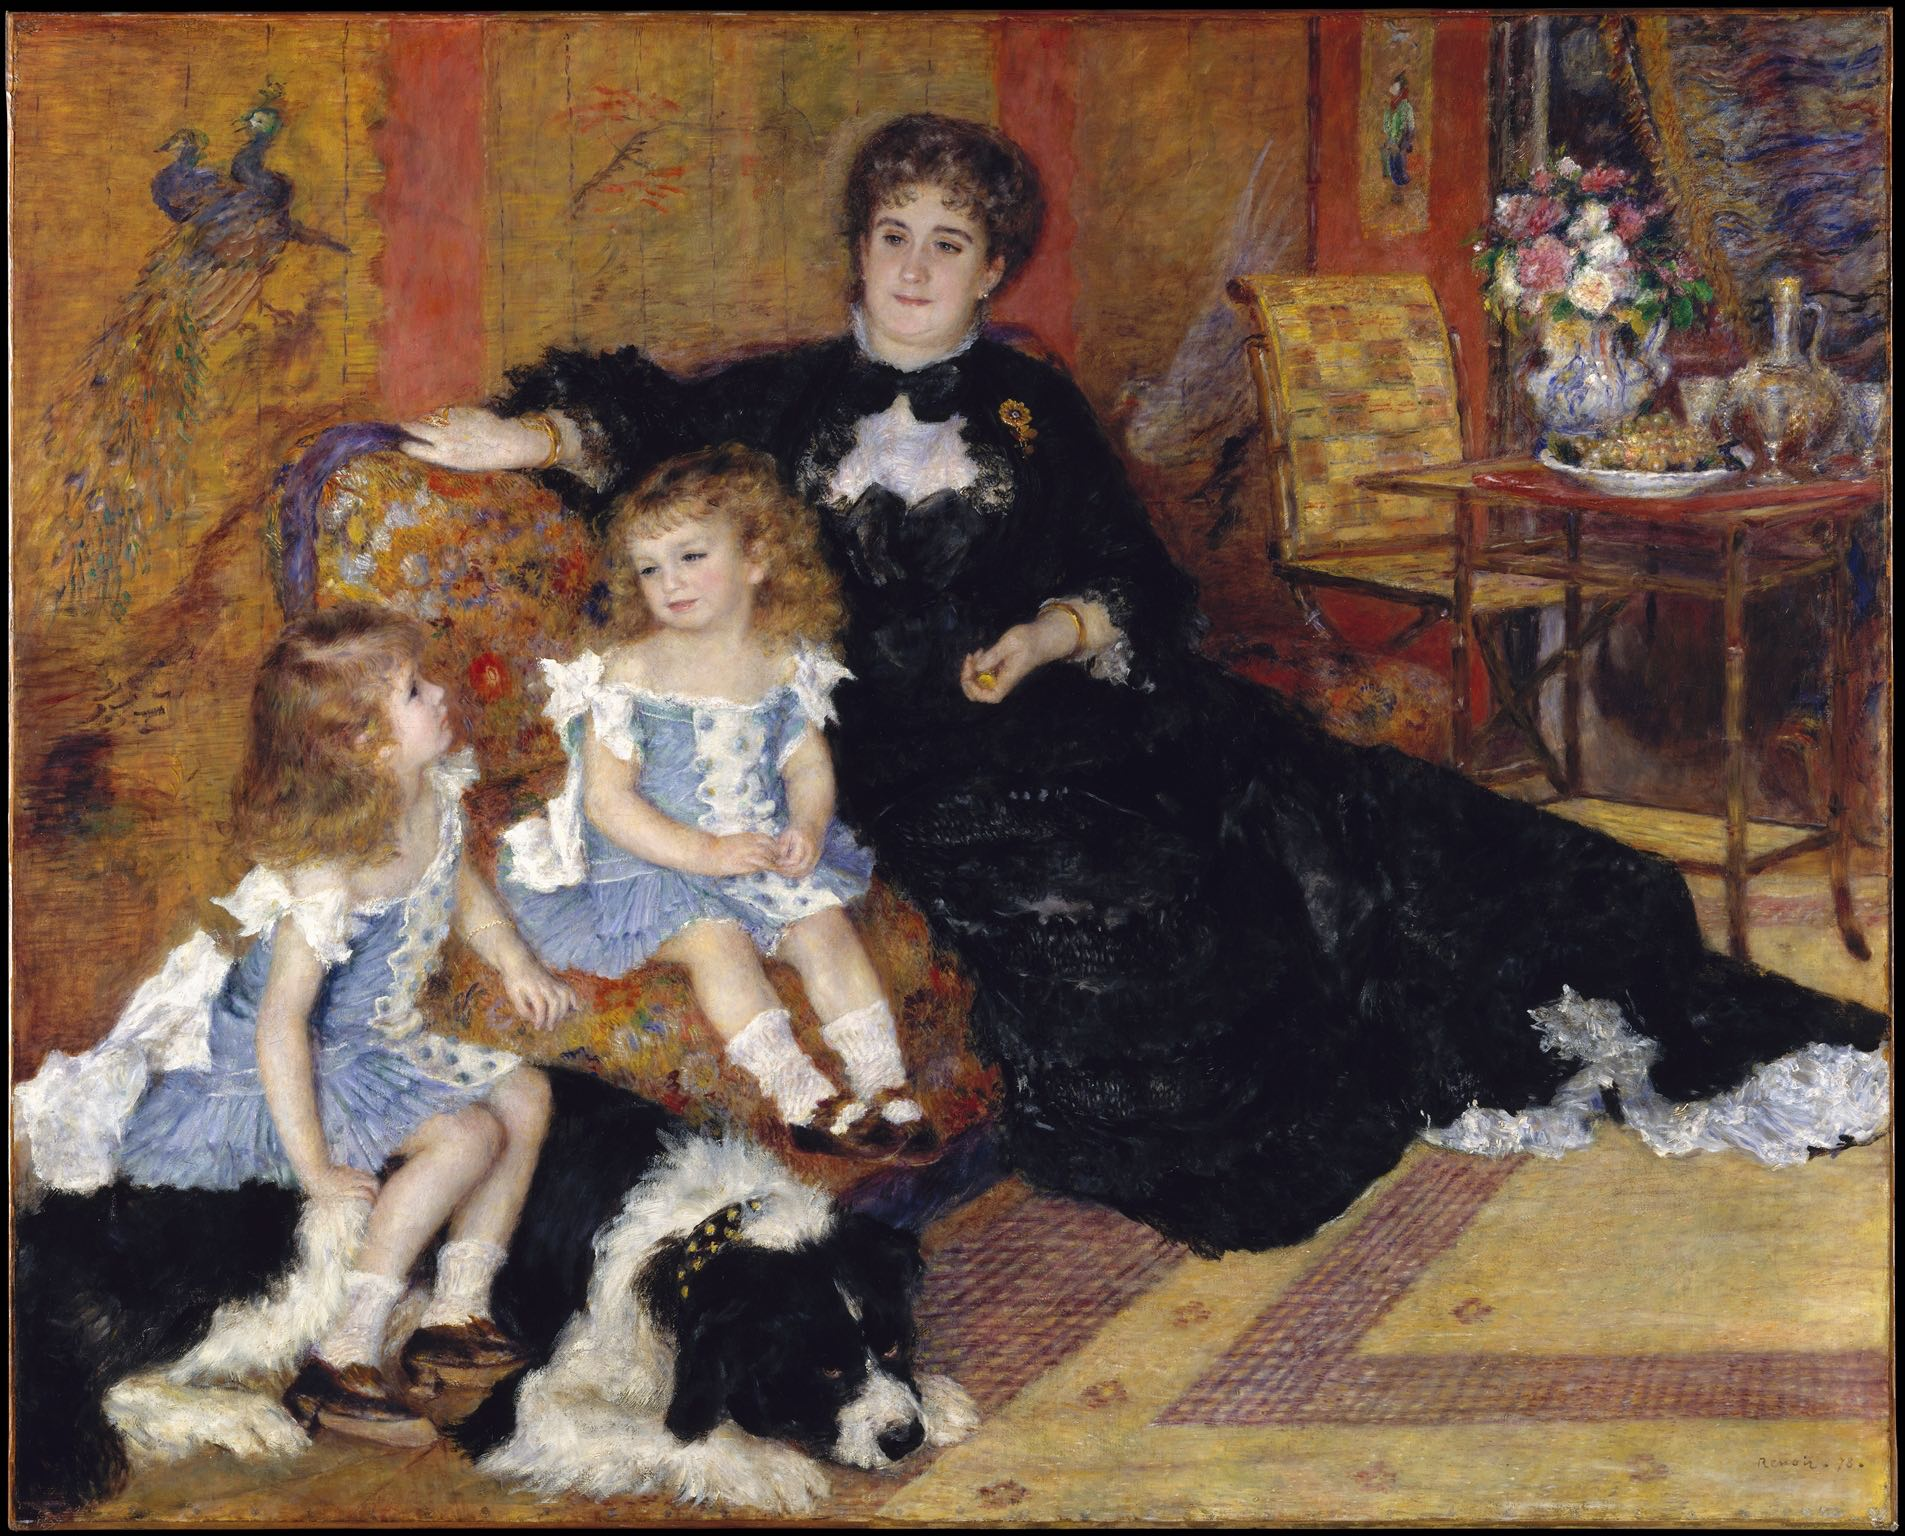 """Madame Georges Charpentier (Marguérite-Louise Lemonnier, 1848–1904) and Her Children, Georgette-Berthe (1872–1945) and Paul-Émile-Charles (1875–1895) by Auguste Renoir (French, Limoges 1841–1919 Cagnes-sur-Mer) Date:1878  The Met website says,""""In this commissioned portrait, as Marcel Proust observed, Renoir gave expression to """"the poetry of an elegant home and the beautiful dresses of our time."""" In the Japanese-style sitting room of her Parisian townhouse—the décor and chic gown testifying to her stylish taste—Marguerite Charpentier sits beside her son, Paul. At age three, his locks are still uncut and, in keeping with current fashion, he is dressed identically to his sister Georgette, perched on the family dog. The well-connected publisher's wife, who hosted elite literary salons attended by such writers as Flaubert, the Goncourts, and Zola, used her influence to ensure that the painting enjoyed a choice spot at the Salon of 1879.""""  Source:  The Met"""